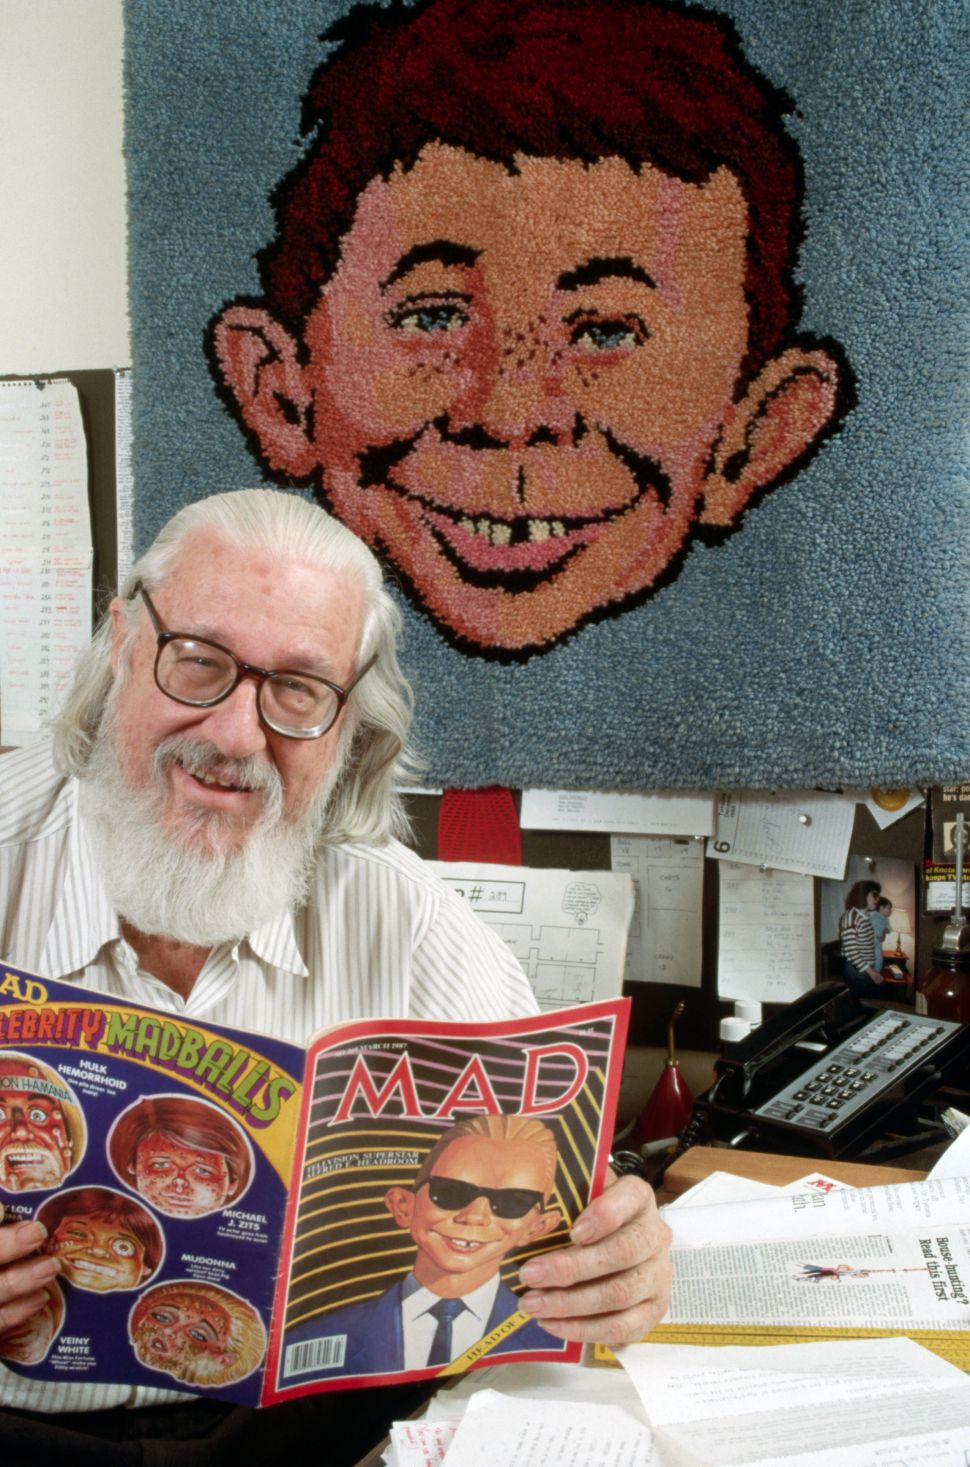 Publisher William Gaines reads a copy of Mad magazine.